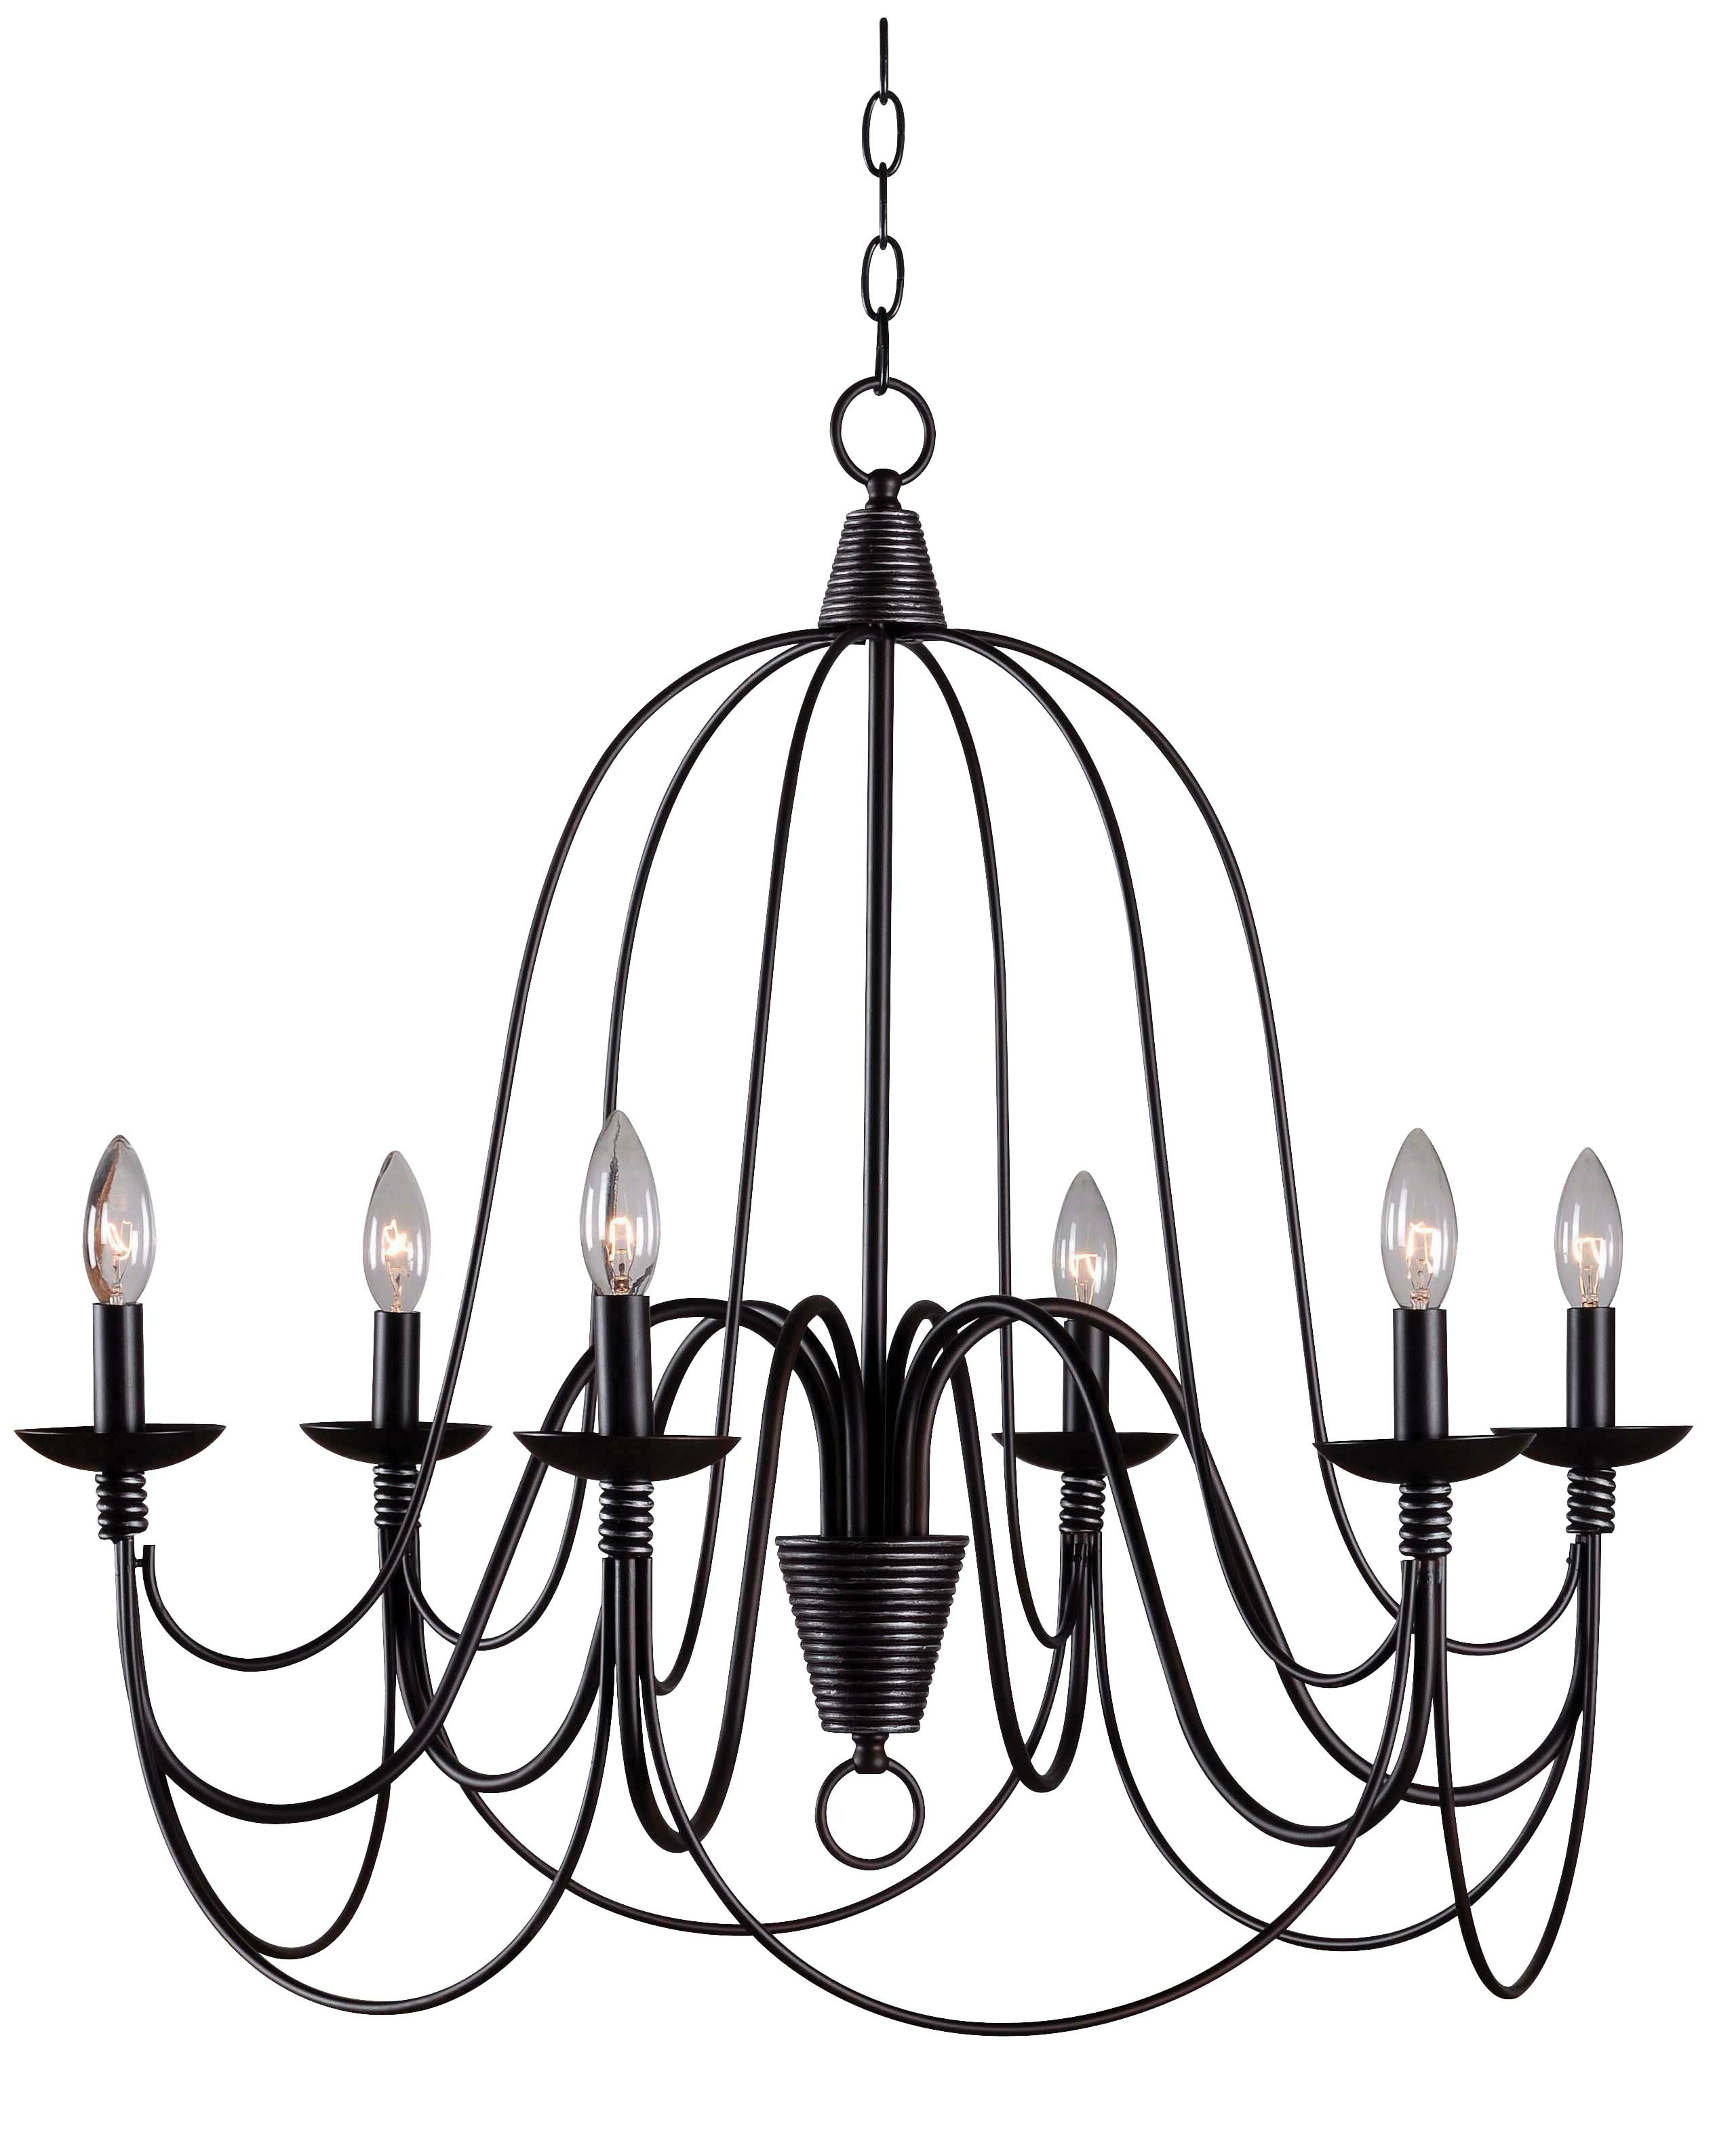 Kollman 6 Light Candle Style Chandelier Within Best And Newest Perseus 6 Light Candle Style Chandeliers (View 13 of 20)